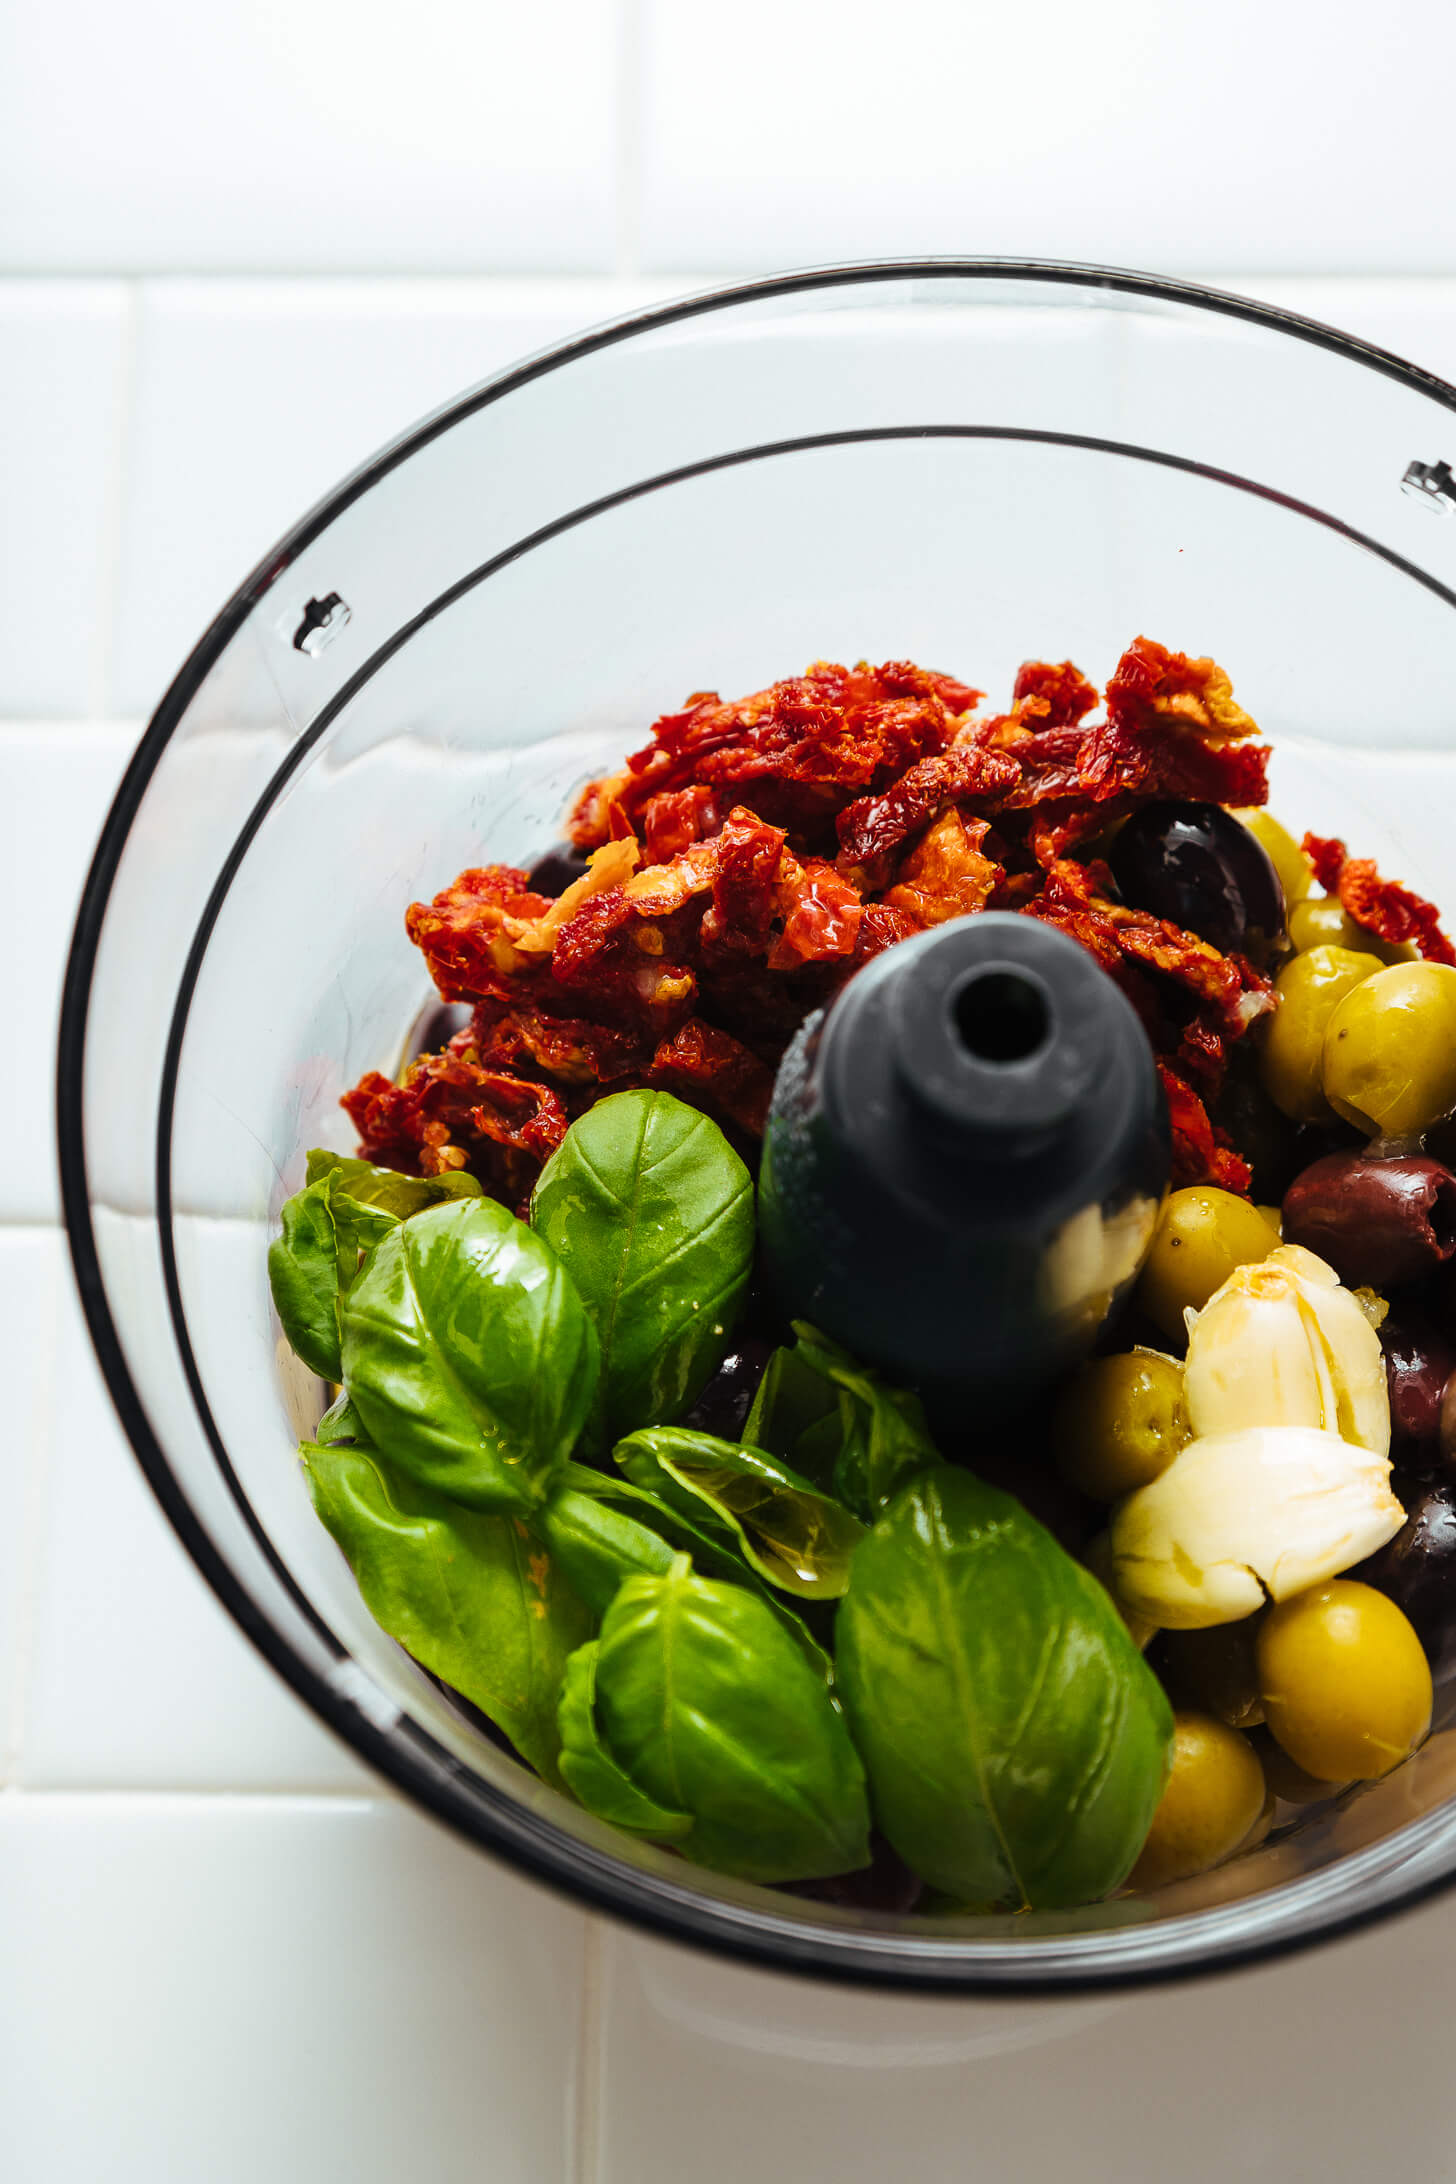 Food processor with ingredients for making our simple Olive Tapenade recipe